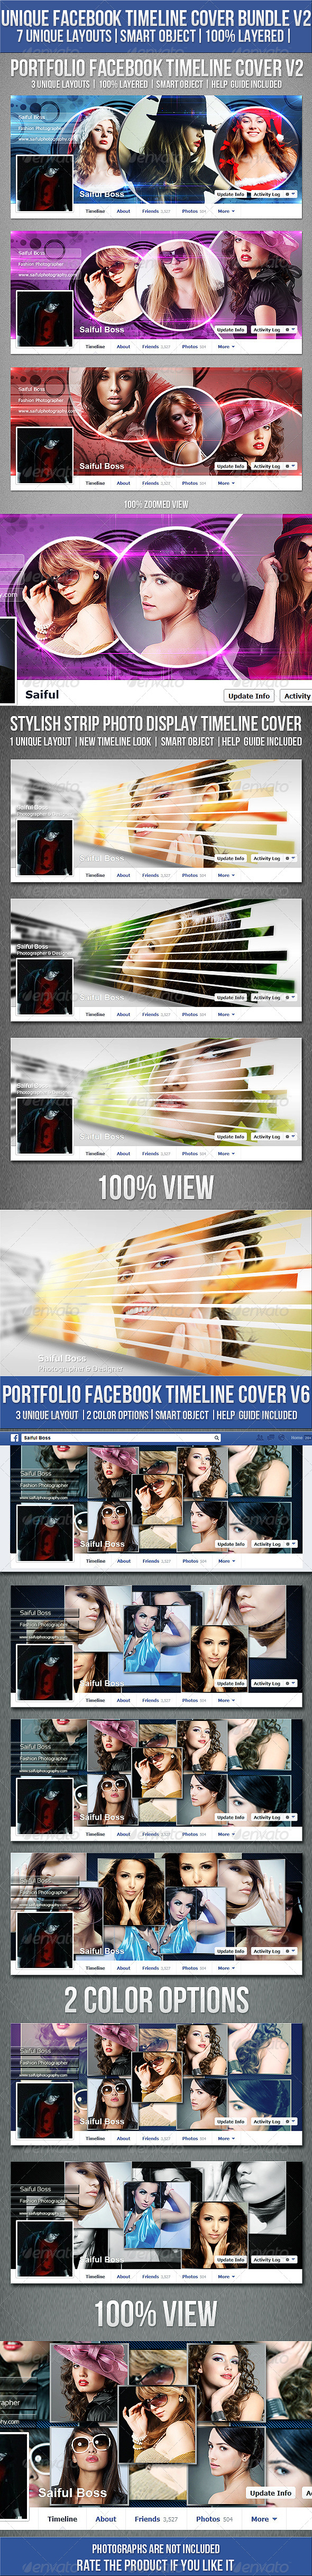 Facebook Timeline Cover Bundle V2 - Facebook Timeline Covers Social Media